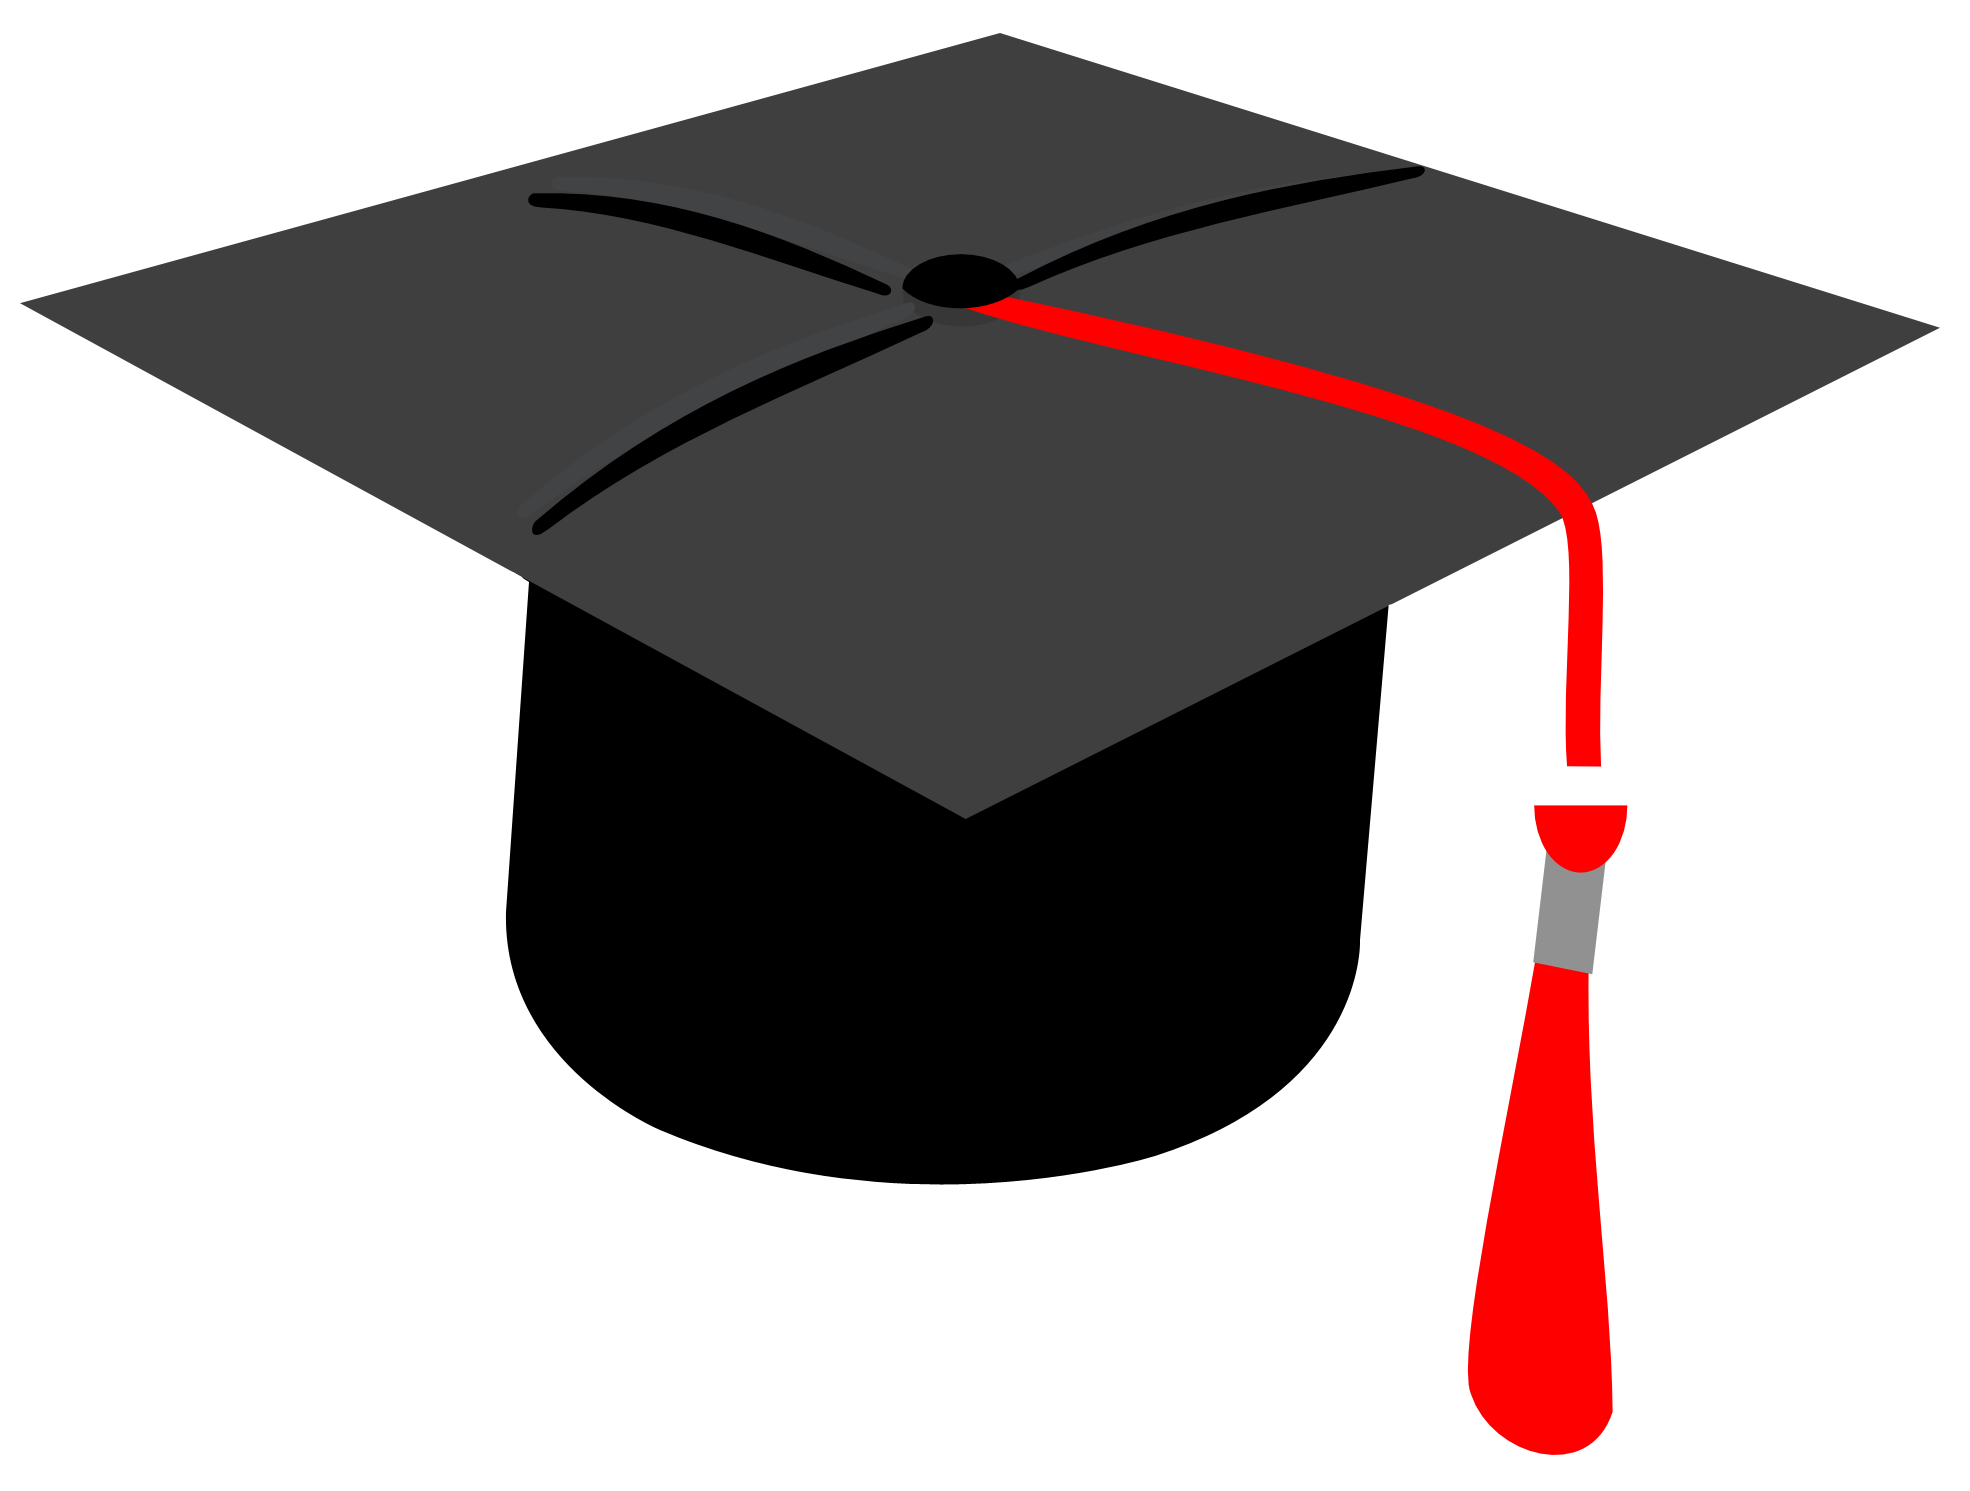 Graduation Cap PNG Transparent Image - Degree Cap PNG